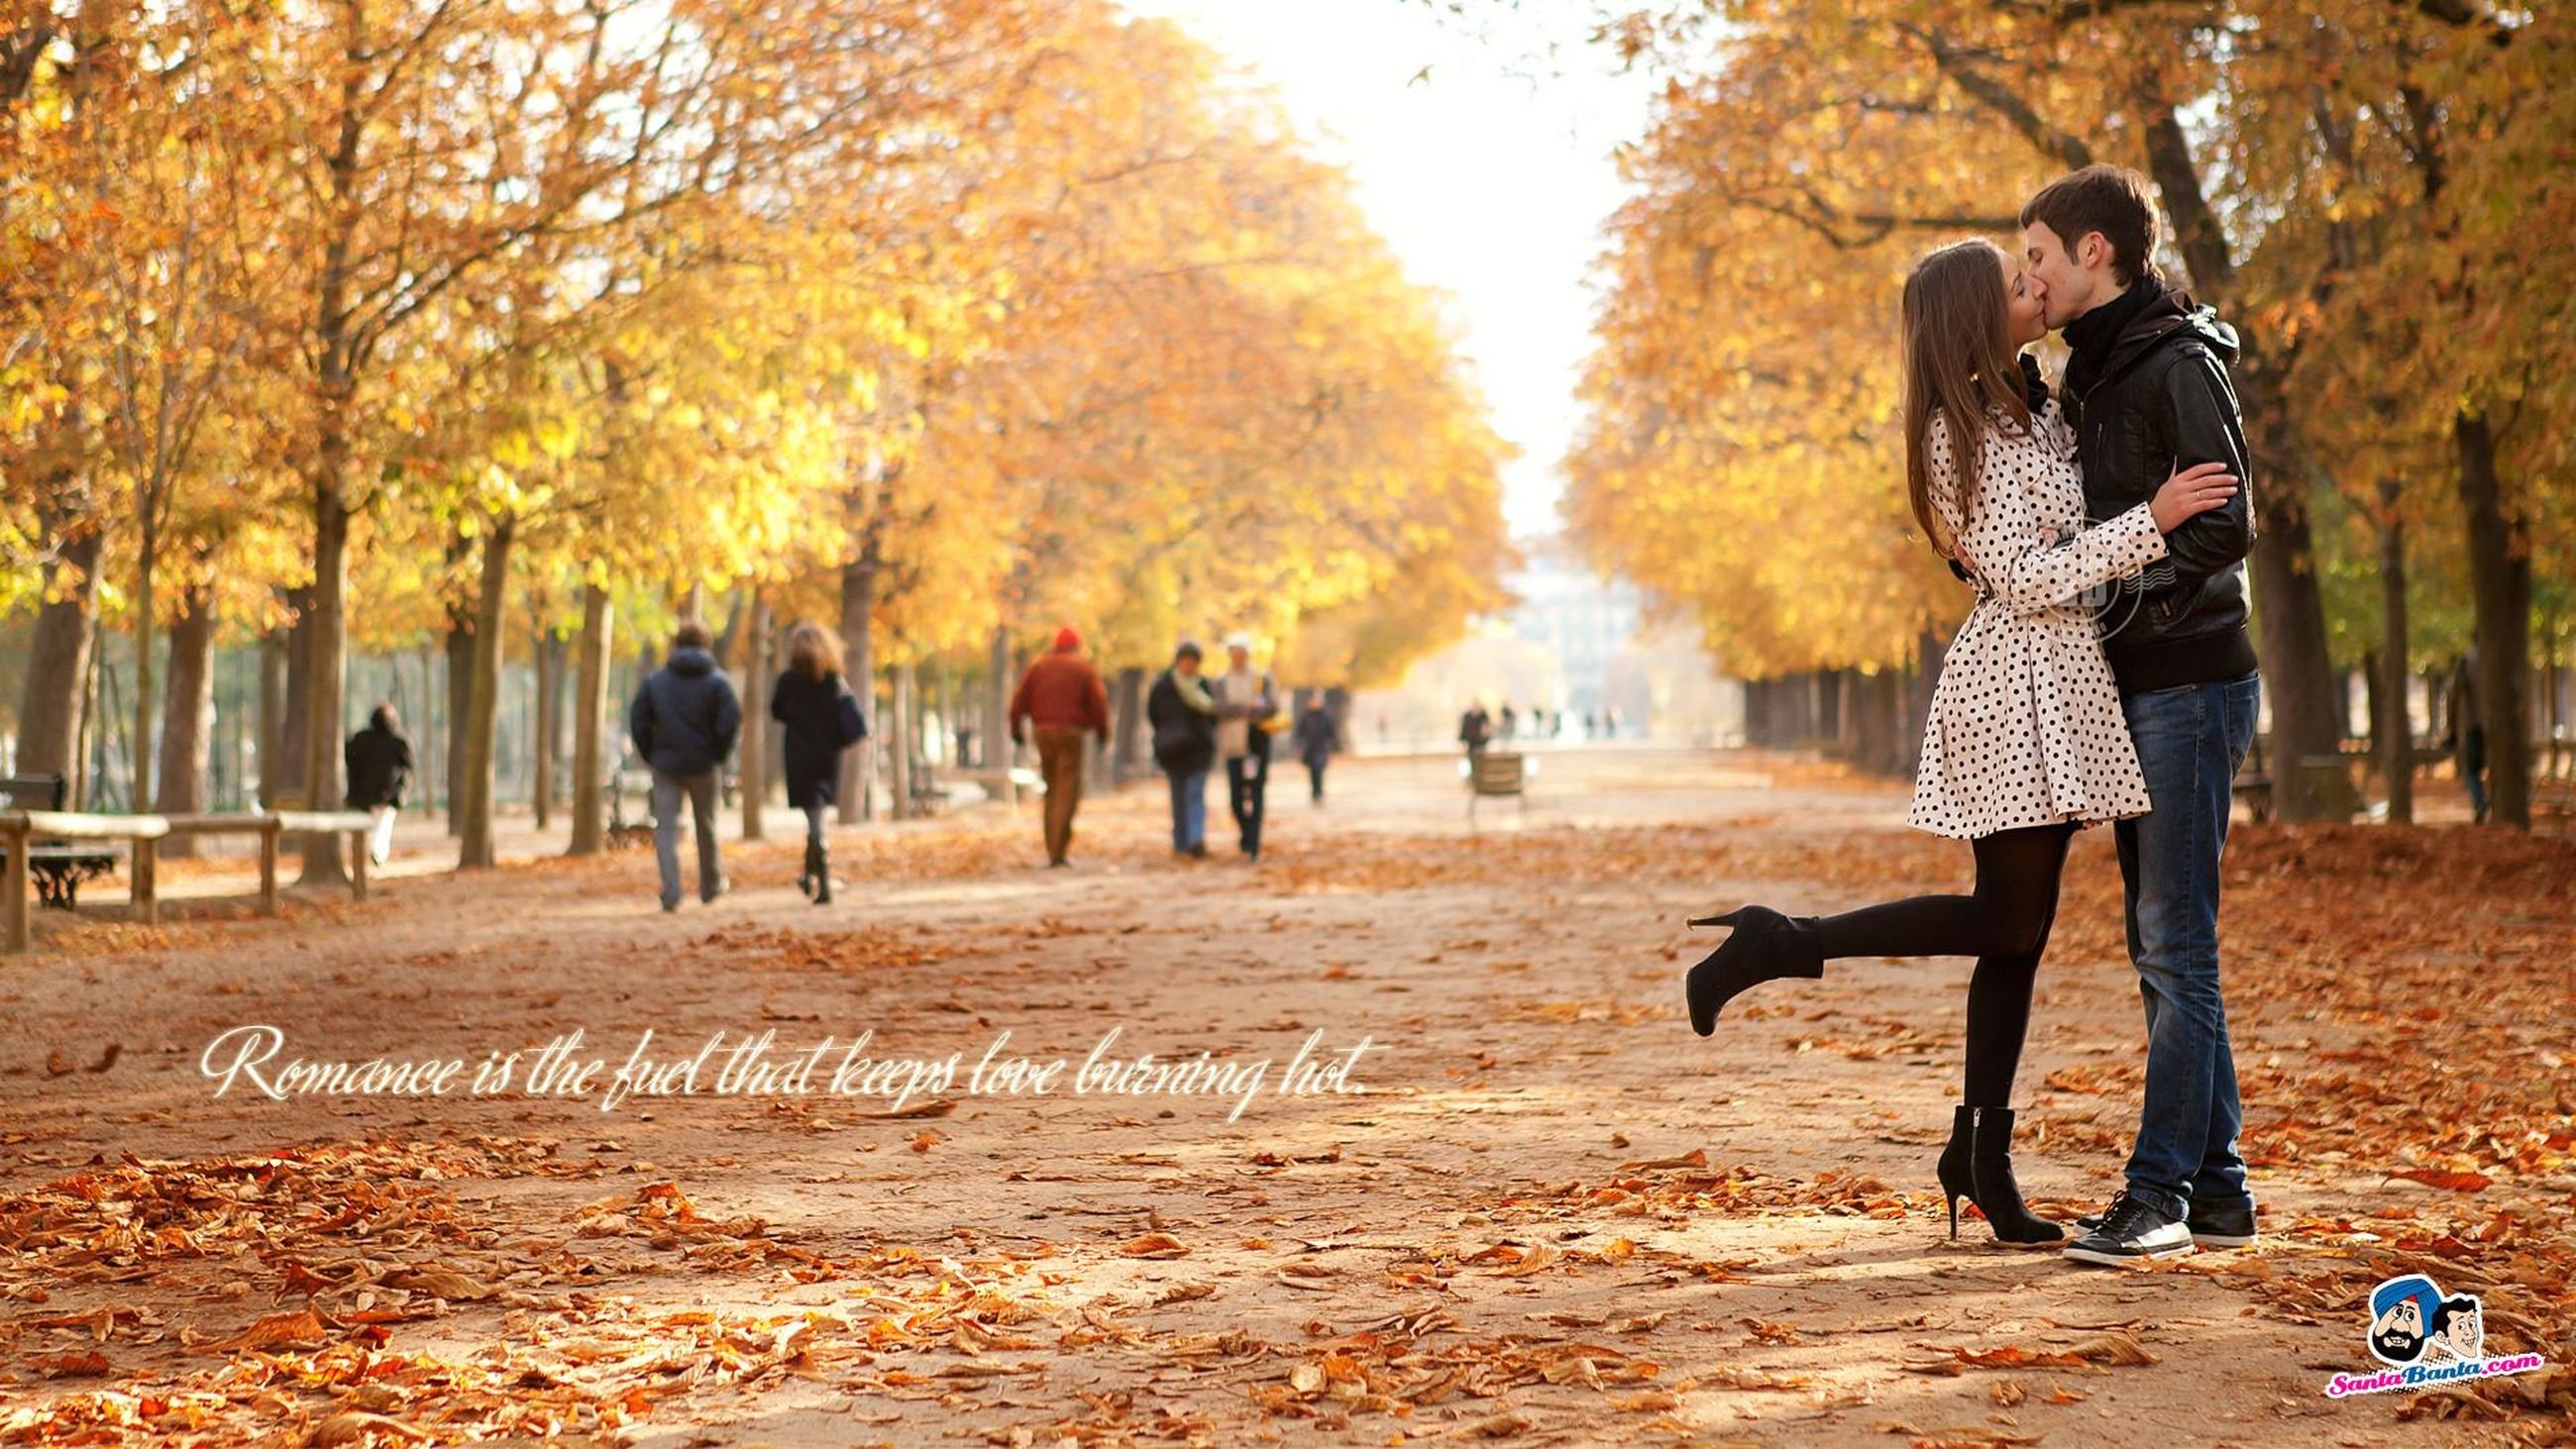 lifestyles, leisure activity, full length, tree, casual clothing, togetherness, childhood, men, boys, autumn, rear view, bonding, girls, season, walking, elementary age, standing